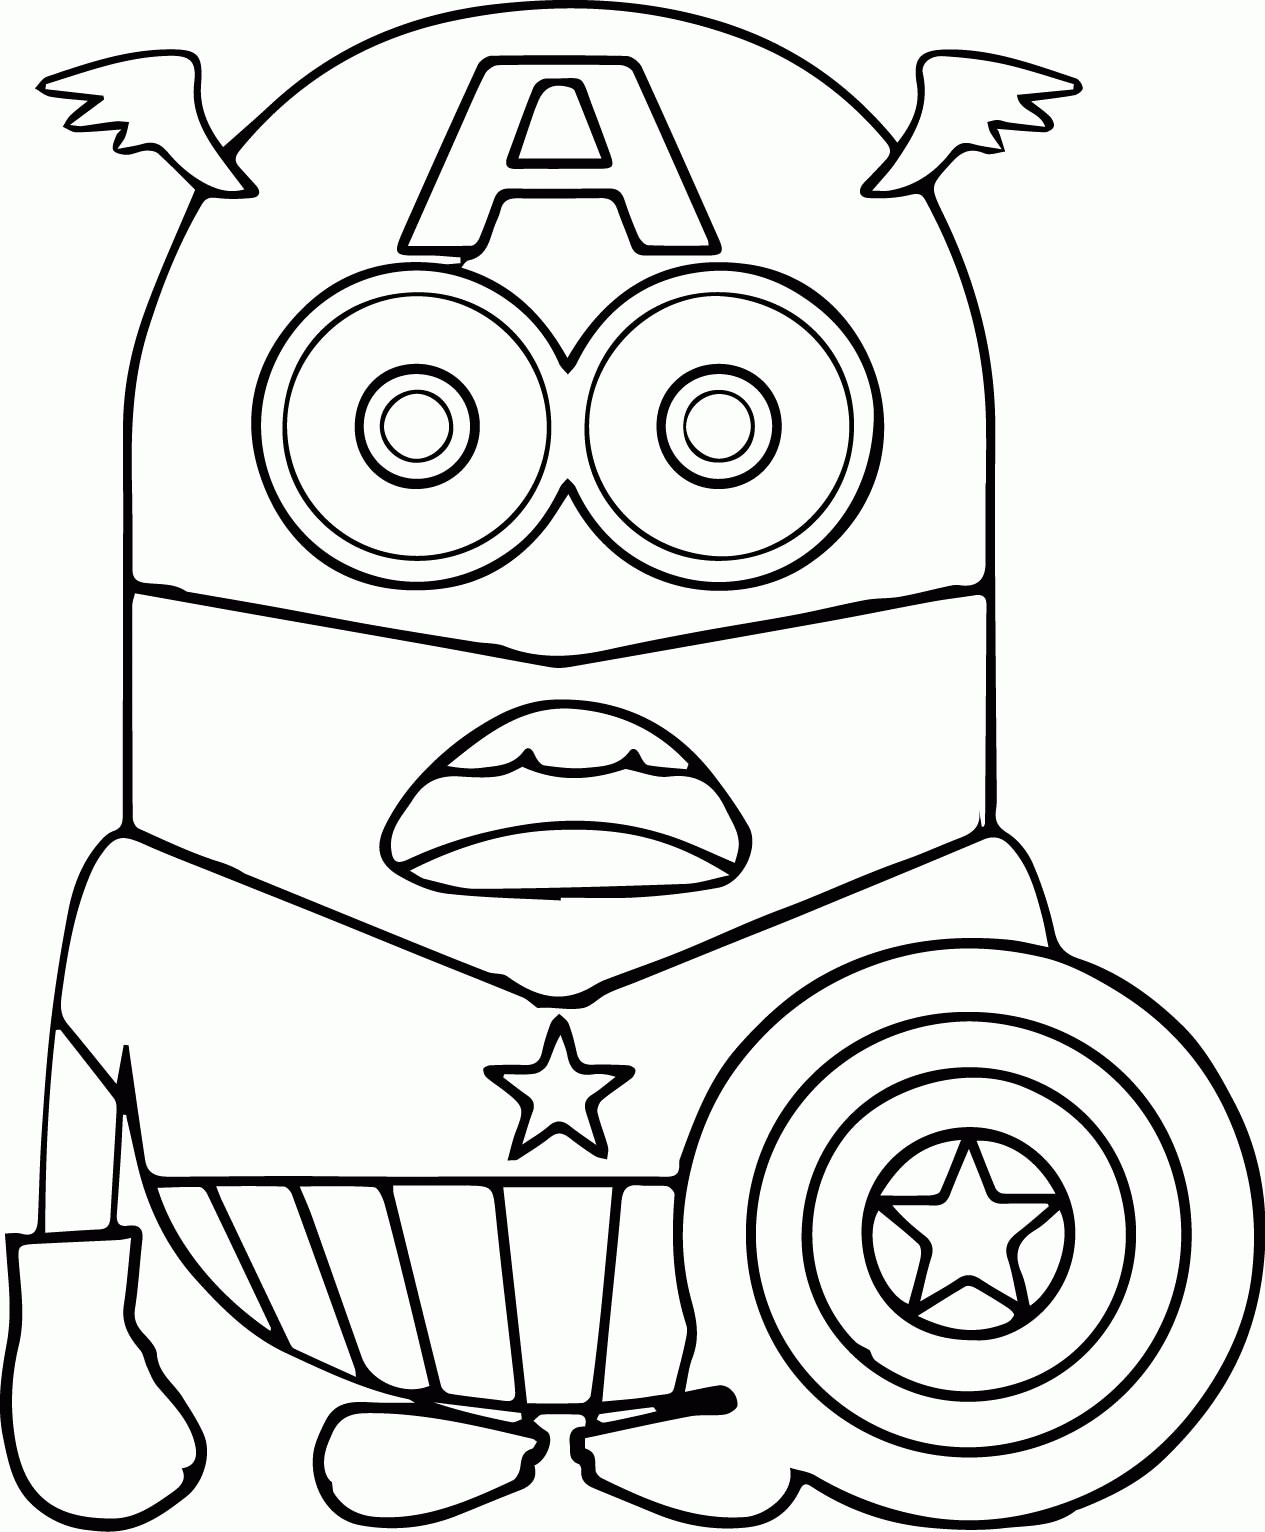 1265x1532 Minion Coloring Pages Easy New Captain America Face Coloring Pages